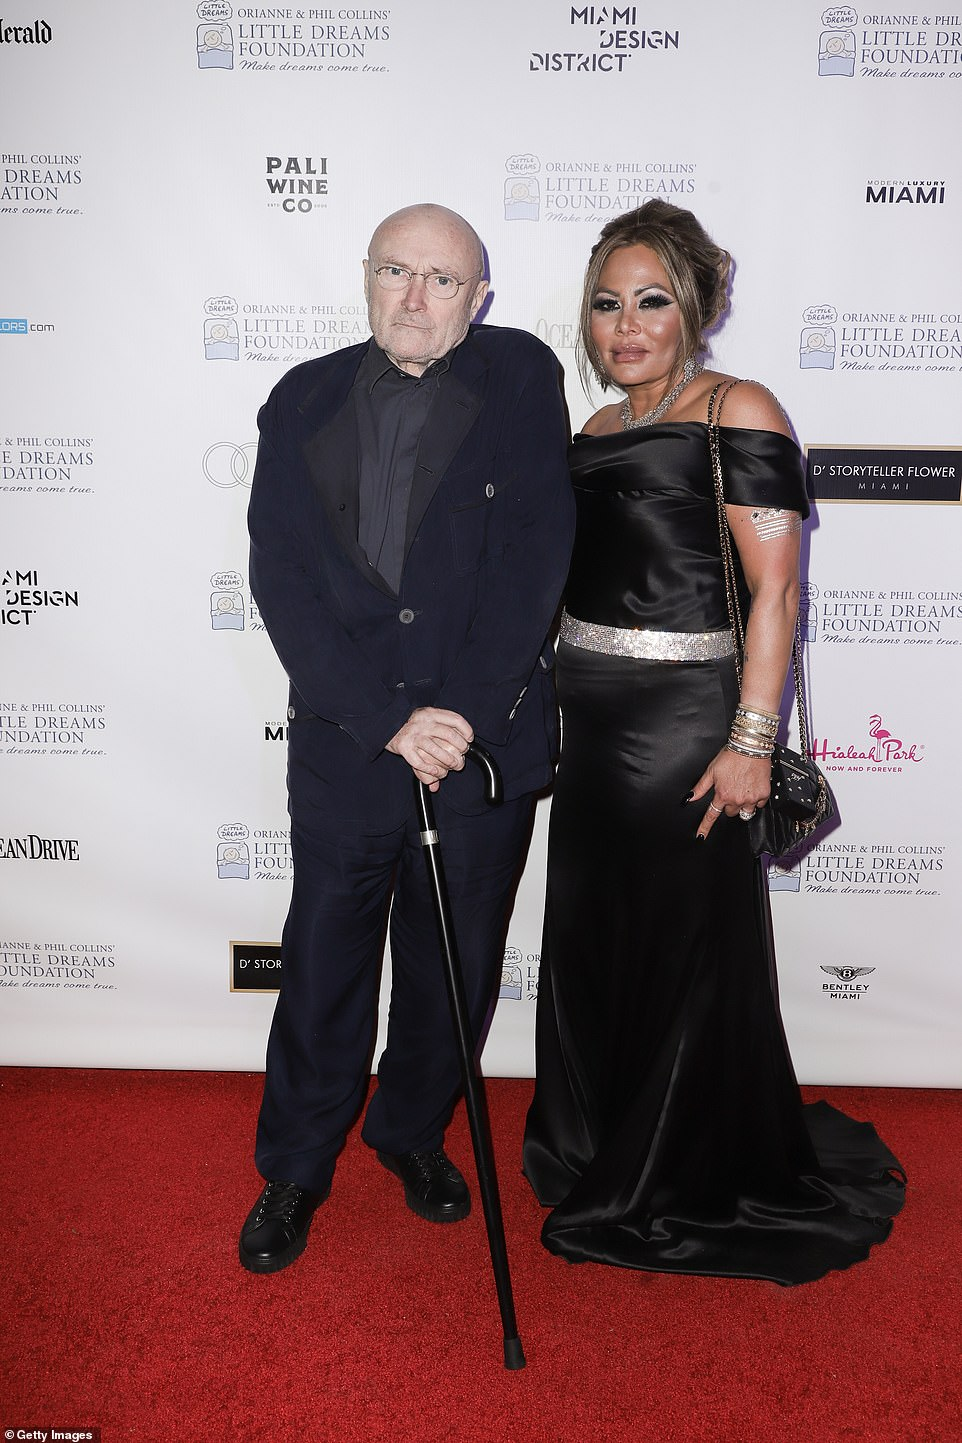 Phil Collins and his ex Orianne are seen above at an event in Miami, Florida, in November 2019